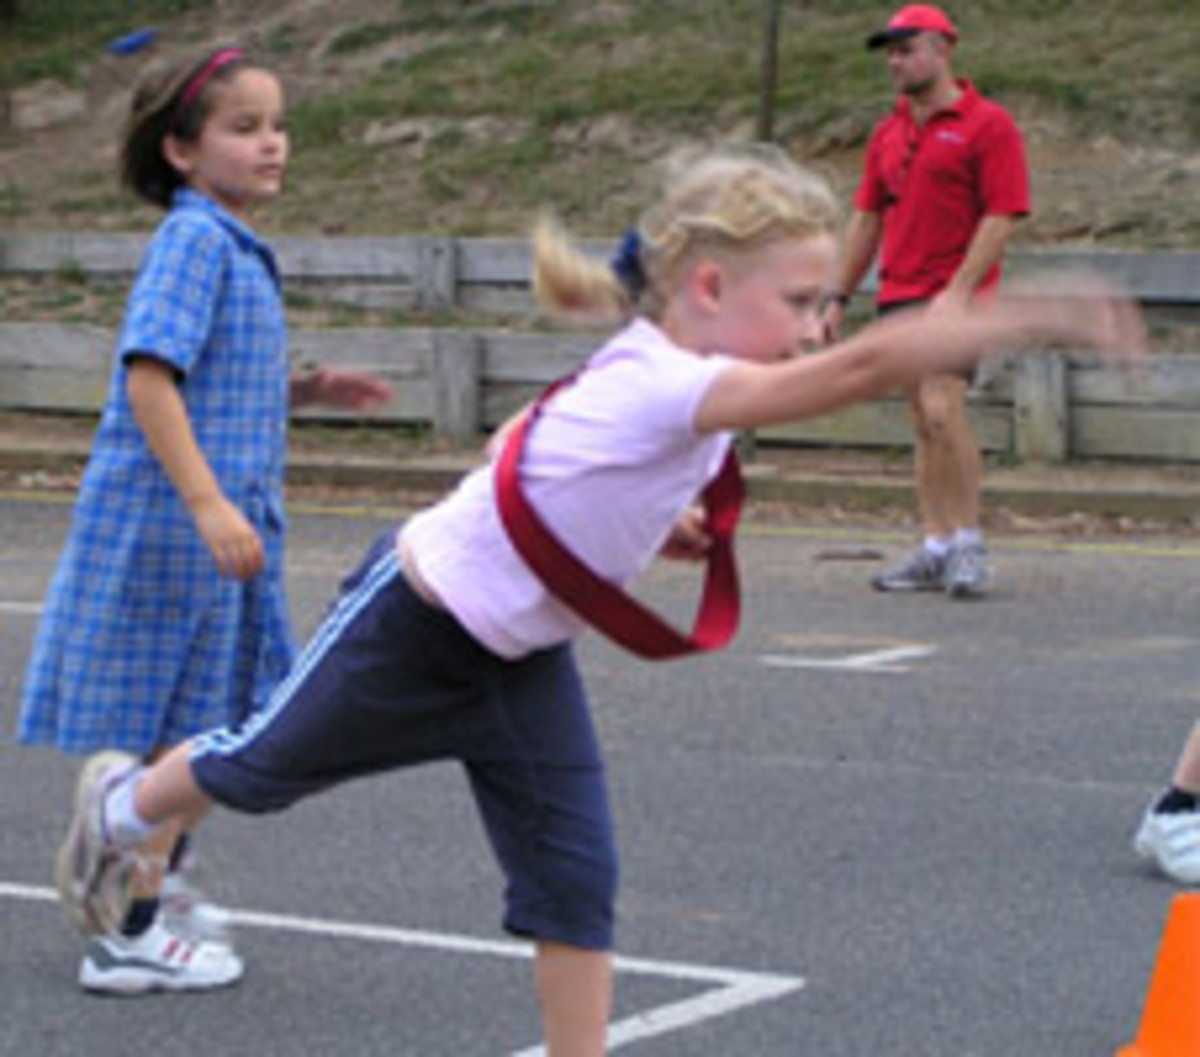 How to Effectively Teach an Overhand Throw to Elementary Students